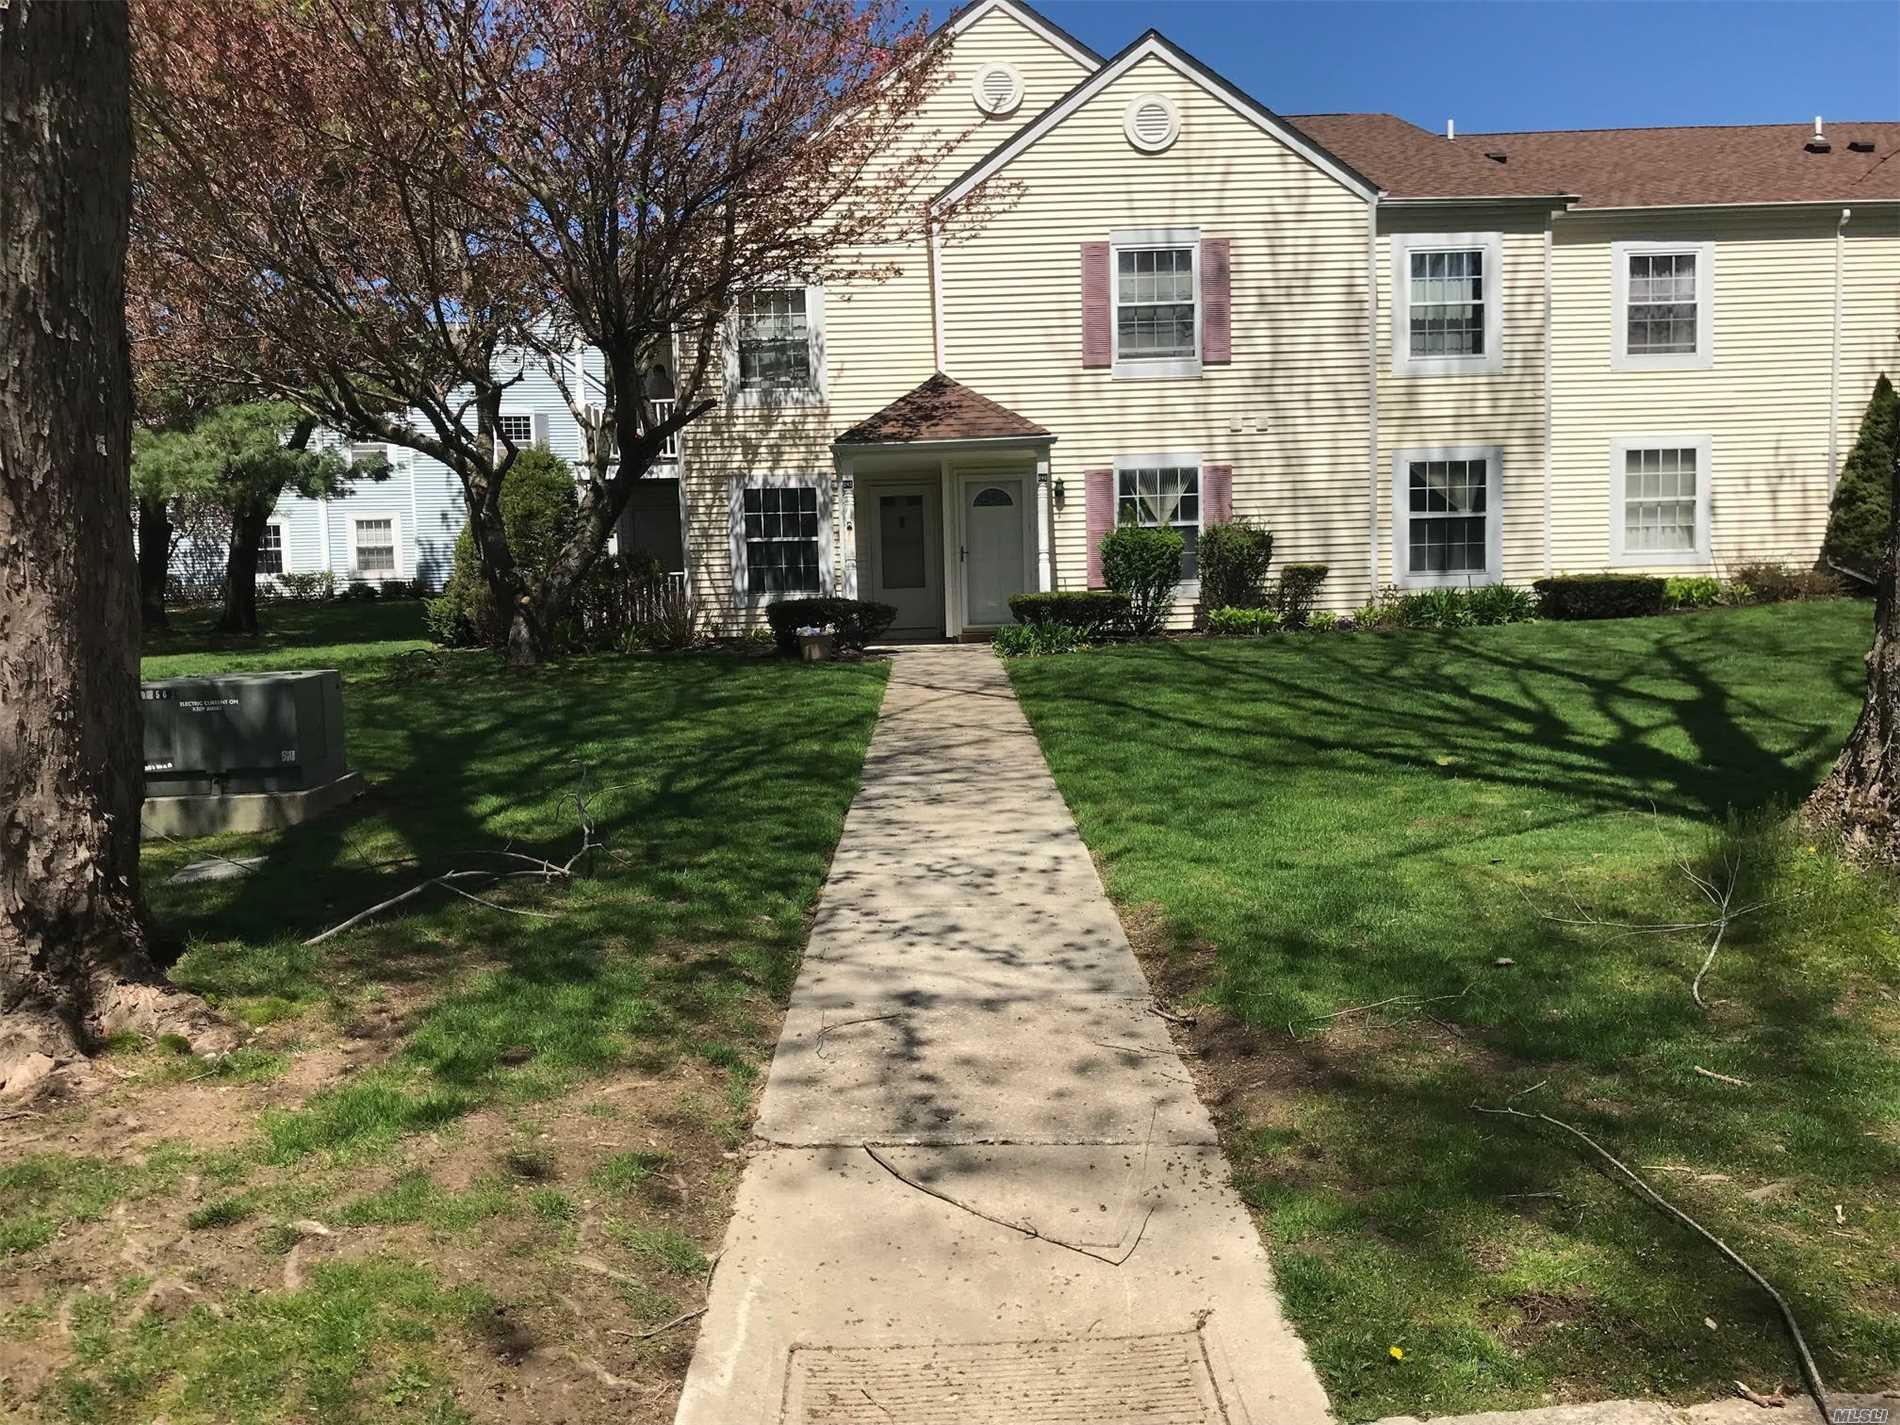 Renovated 2 Bedroom 1-1/2 Bath Lower Unit with Sliders To Sunset Patio This Corner Unit Has Been Tastefully Renovated and Offers Formal Dining Area Sunlit Living Room Master with 1/2 Bath, Full Bath with Laundry Hook ups.